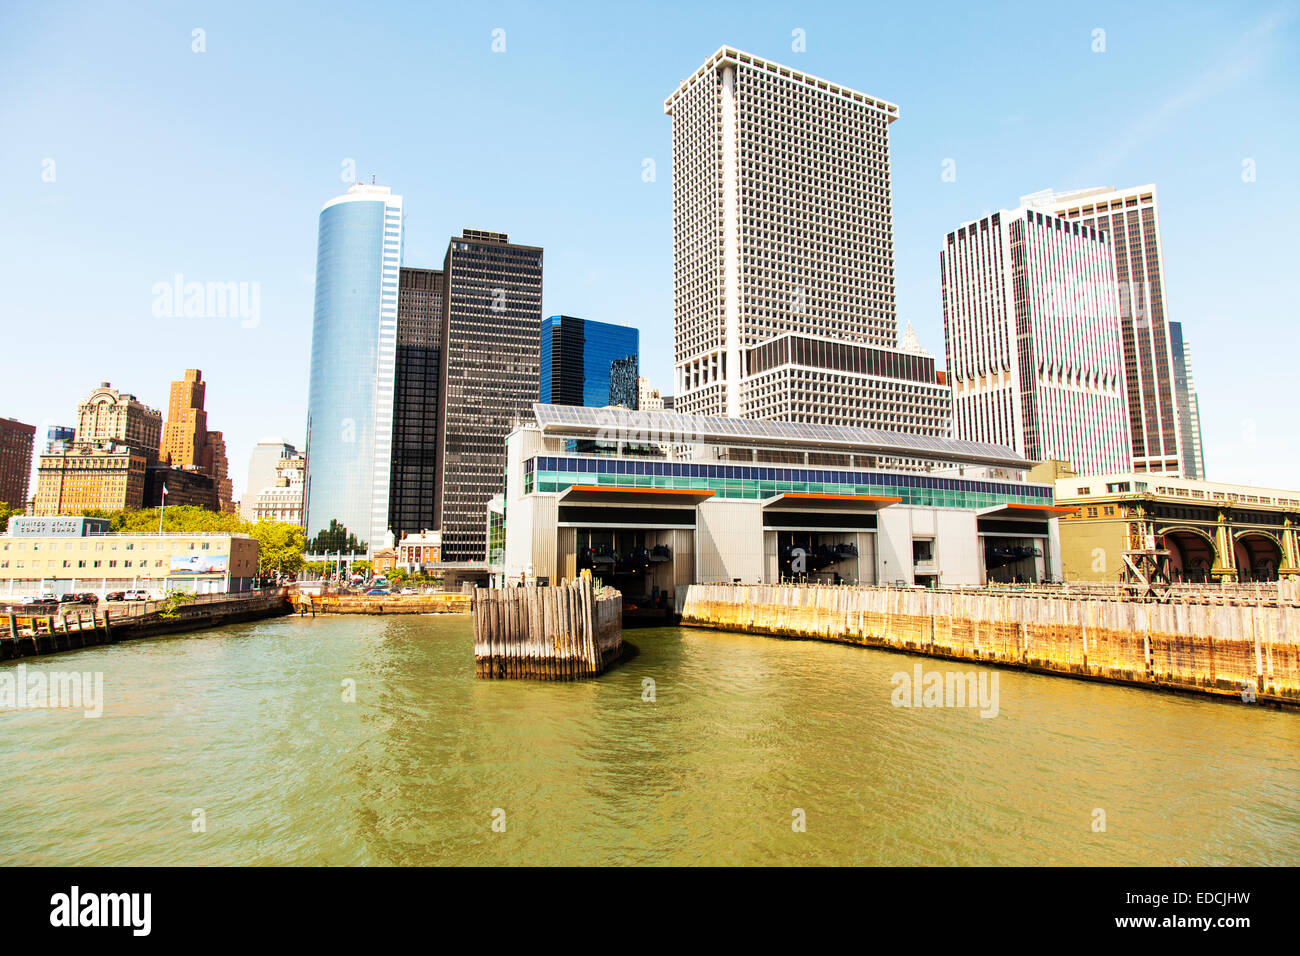 Staten island ferry dock docking station Manhattan New York City NY NYC USA America United States - Stock Image